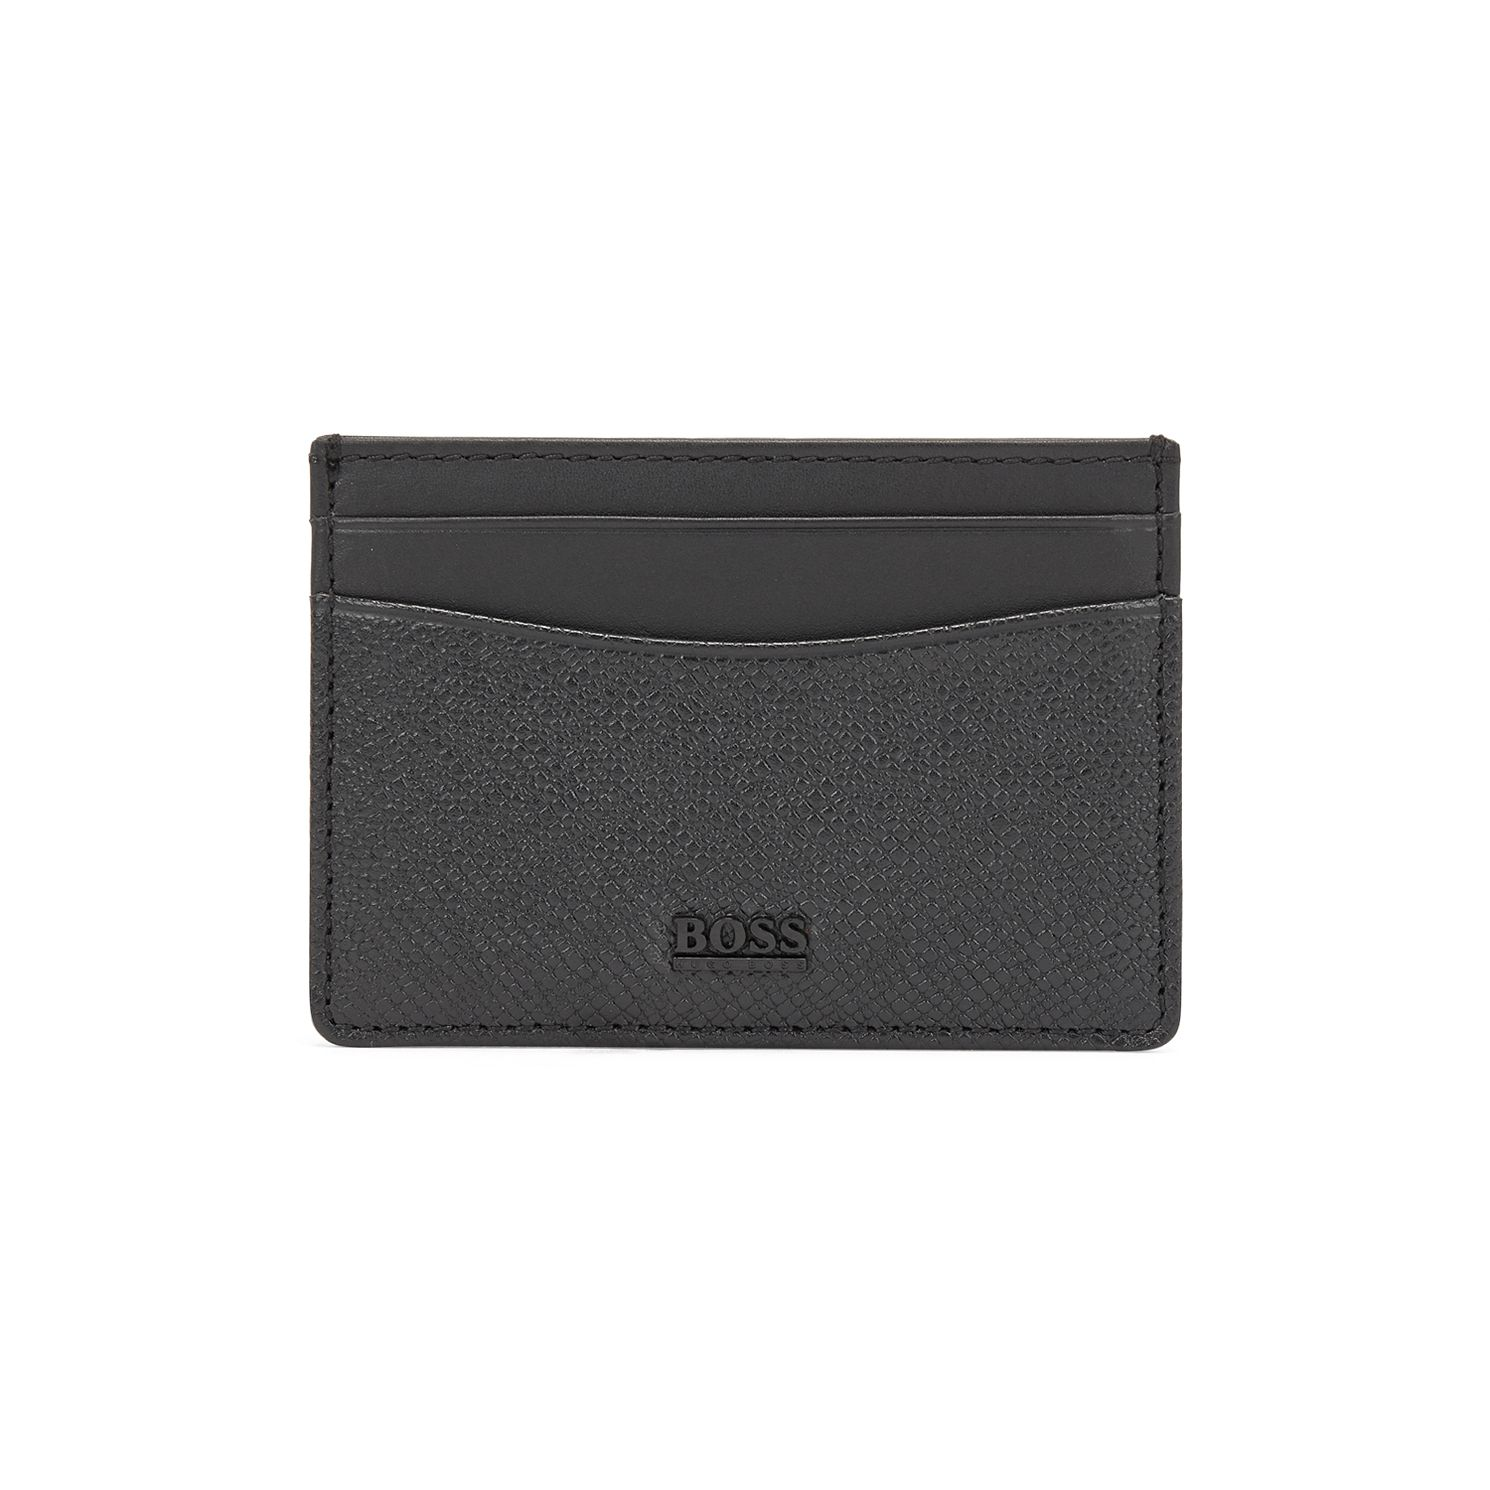 BOSS Signpop Men's Grey Leather Cardholder - Product number 1008684